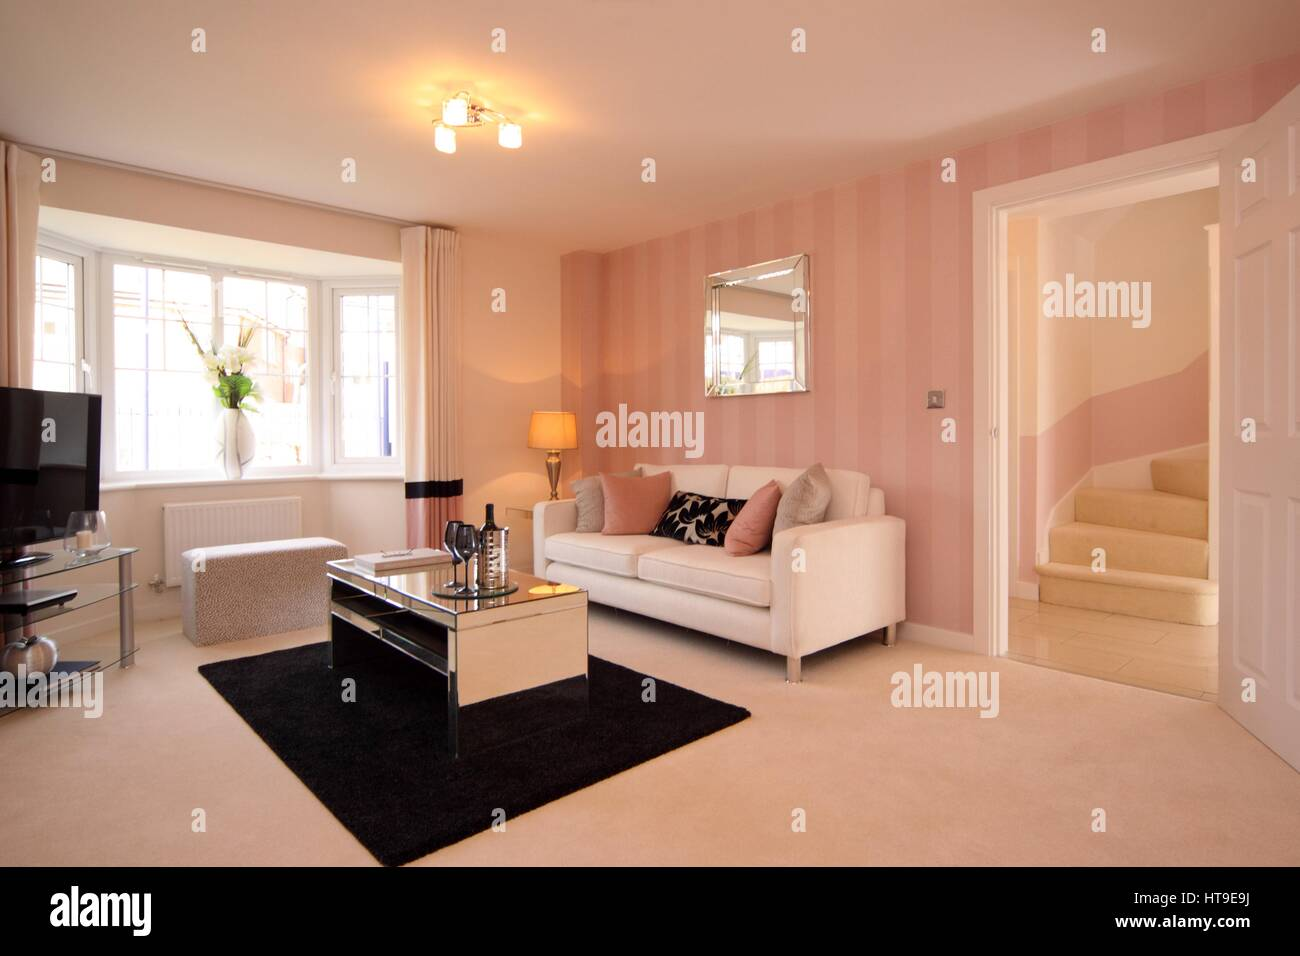 Home Interior. Modern Lounge, New Build, Living Room, Pink Cream Decor,  Hallway, Stairs, Mirrored Coffee Table, Part 43